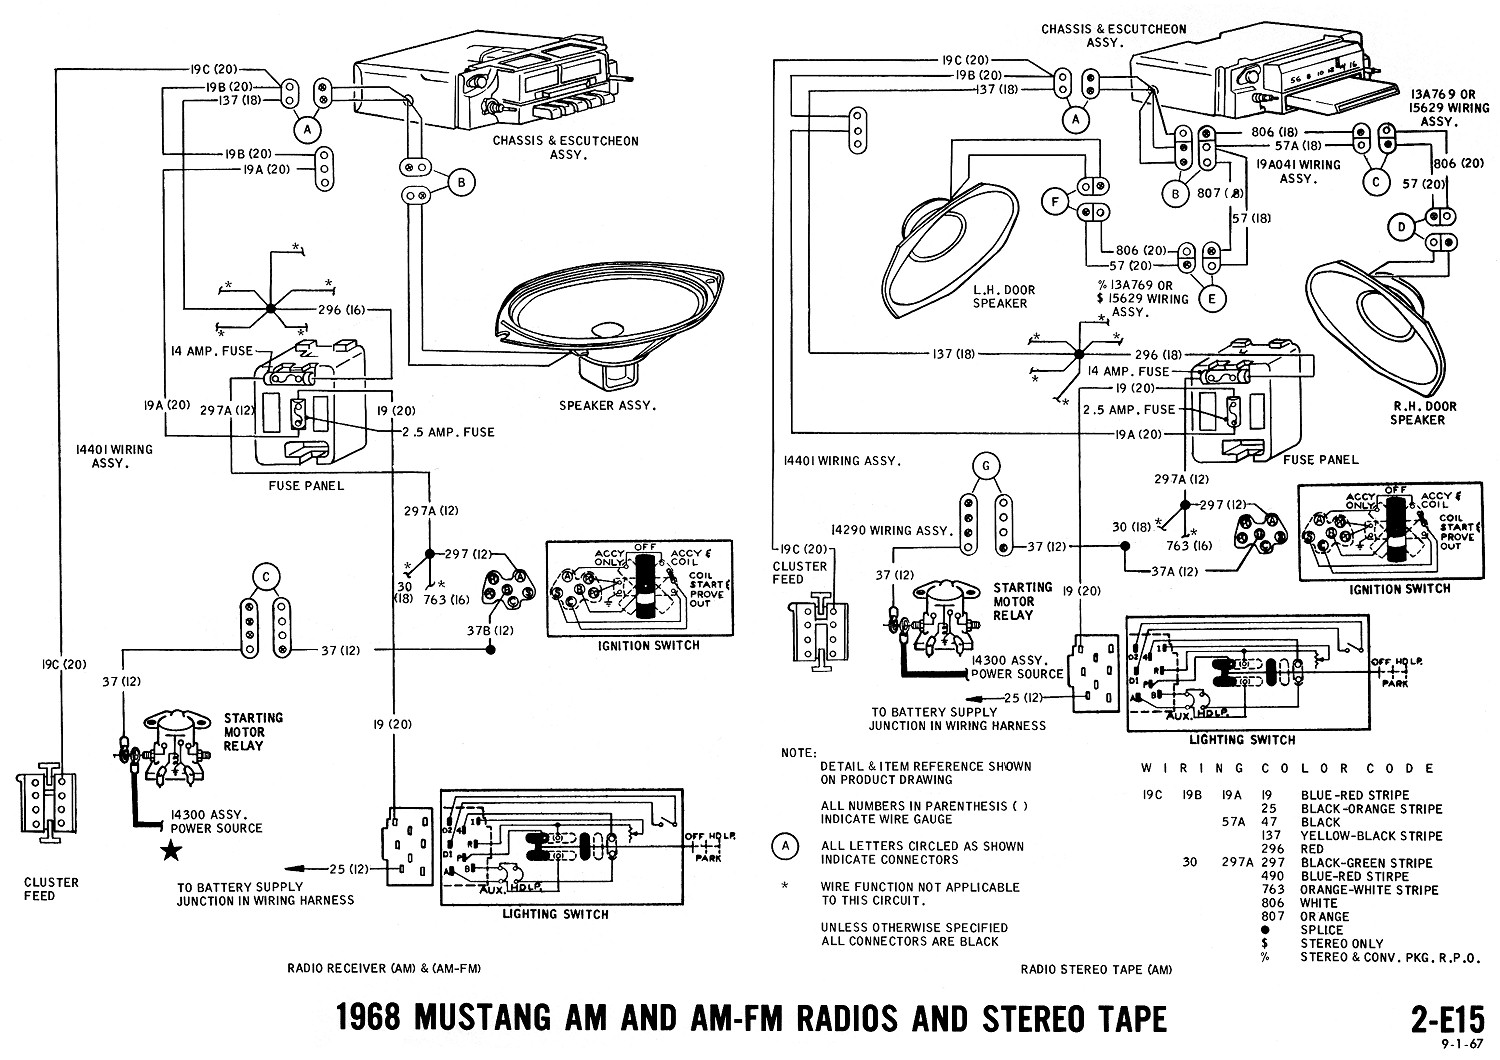 wiring diagram for 1988 firebird with Dash Wiring Diagram 1968 on Wiring Diagrams And Pinouts besides C3 Corvette Ac Heater Duct Diagram additionally Gm Solenoid Wiring Diagram also 1968 Mustang Convertible Top Switch Wiring Diagram furthermore 97 3800 V6 Firebird Engine Diagram.